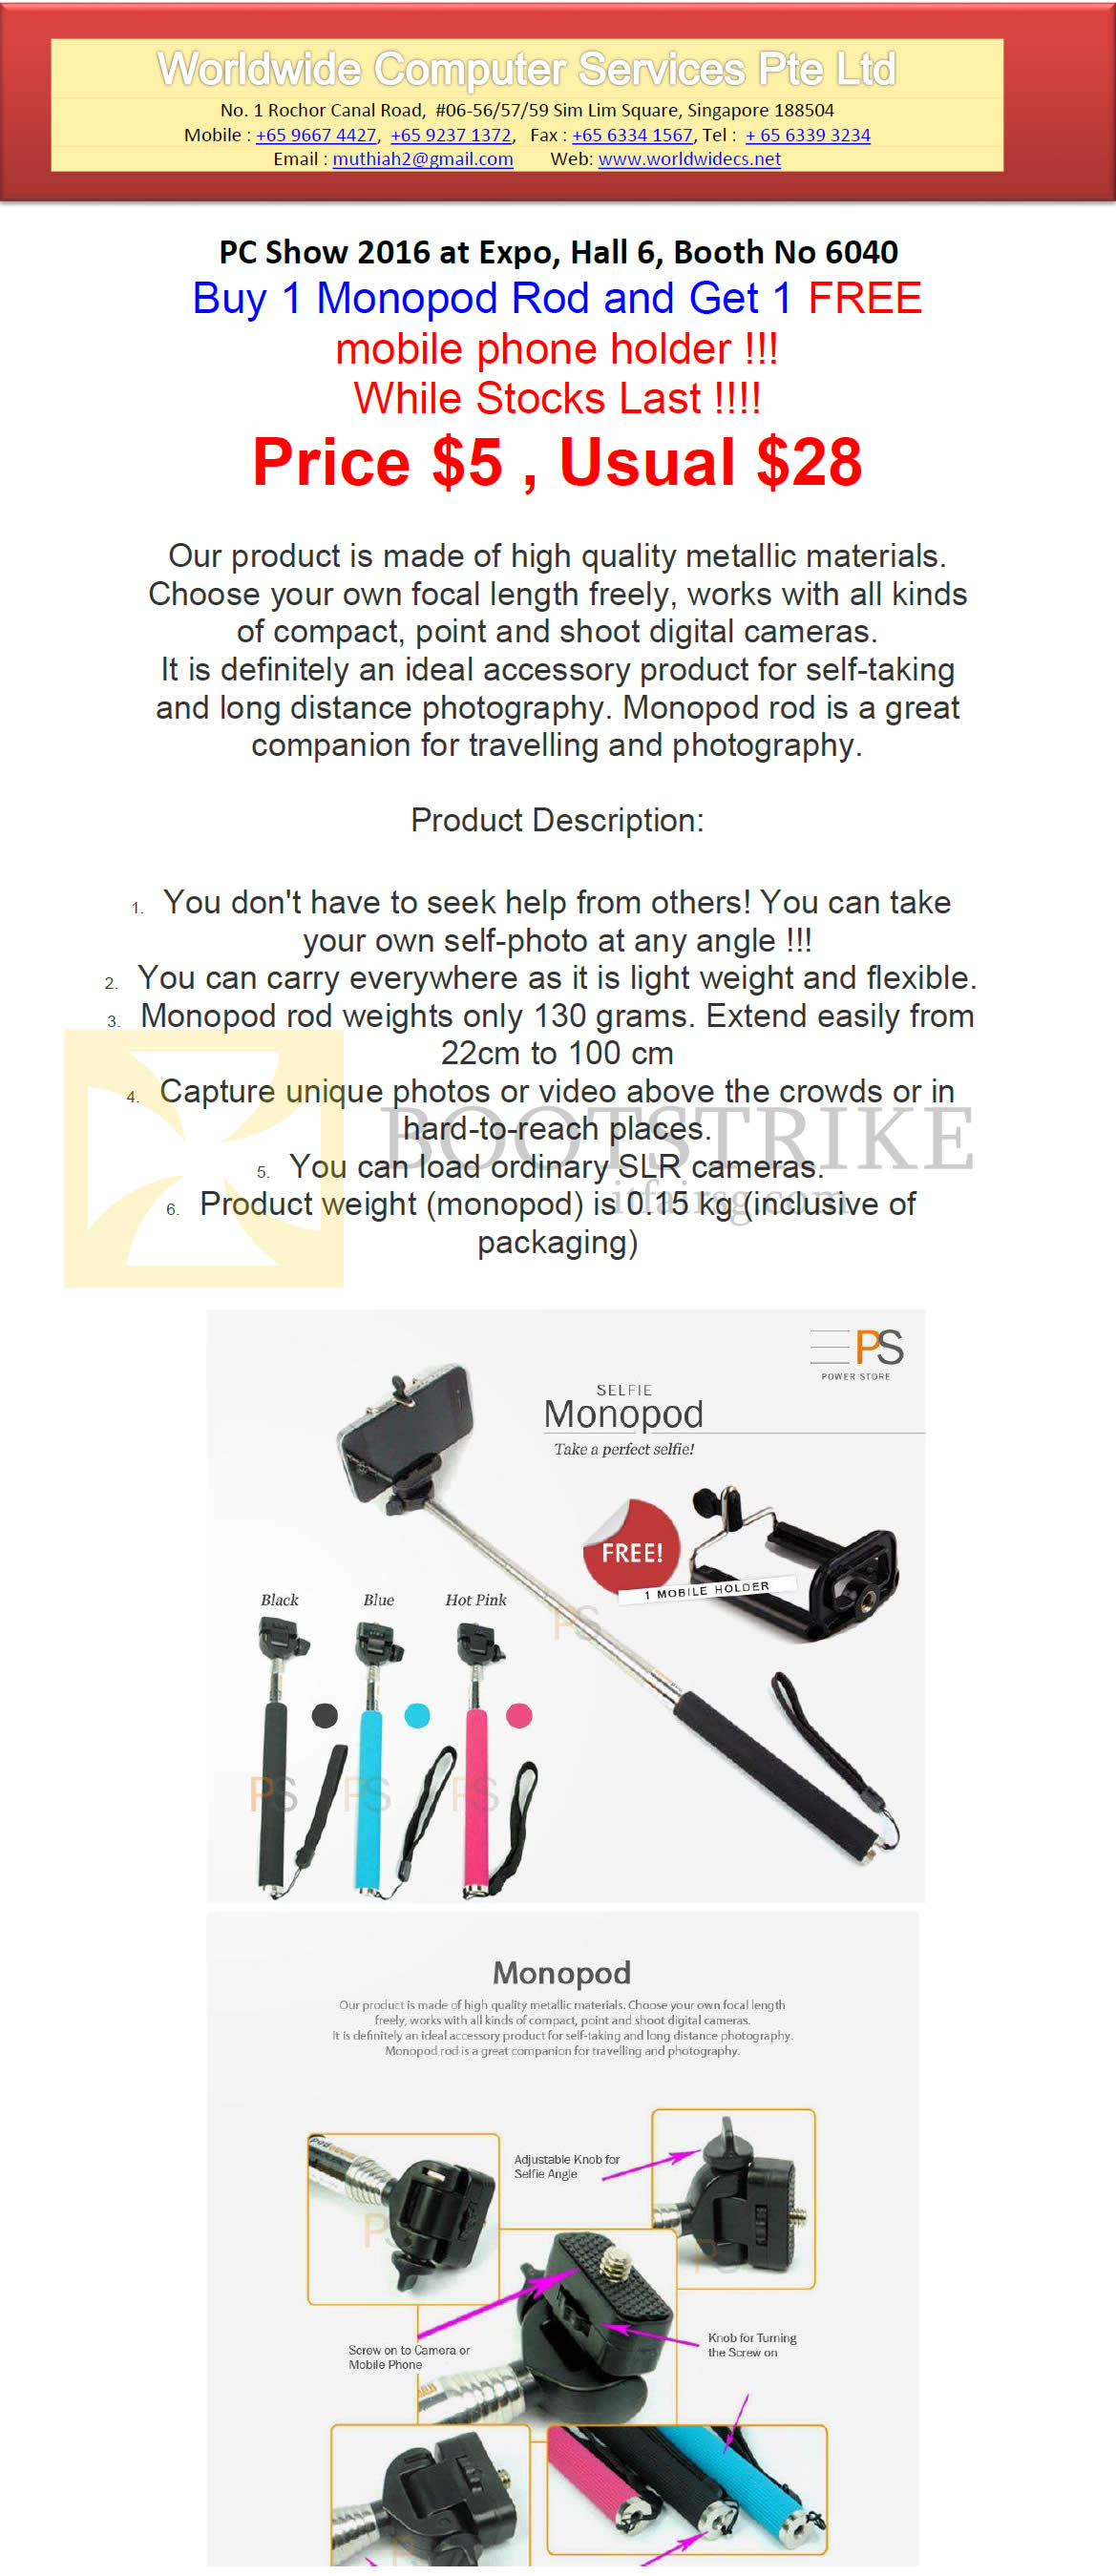 PC SHOW 2016 price list image brochure of Worldwide Computer Services Monopod Rod